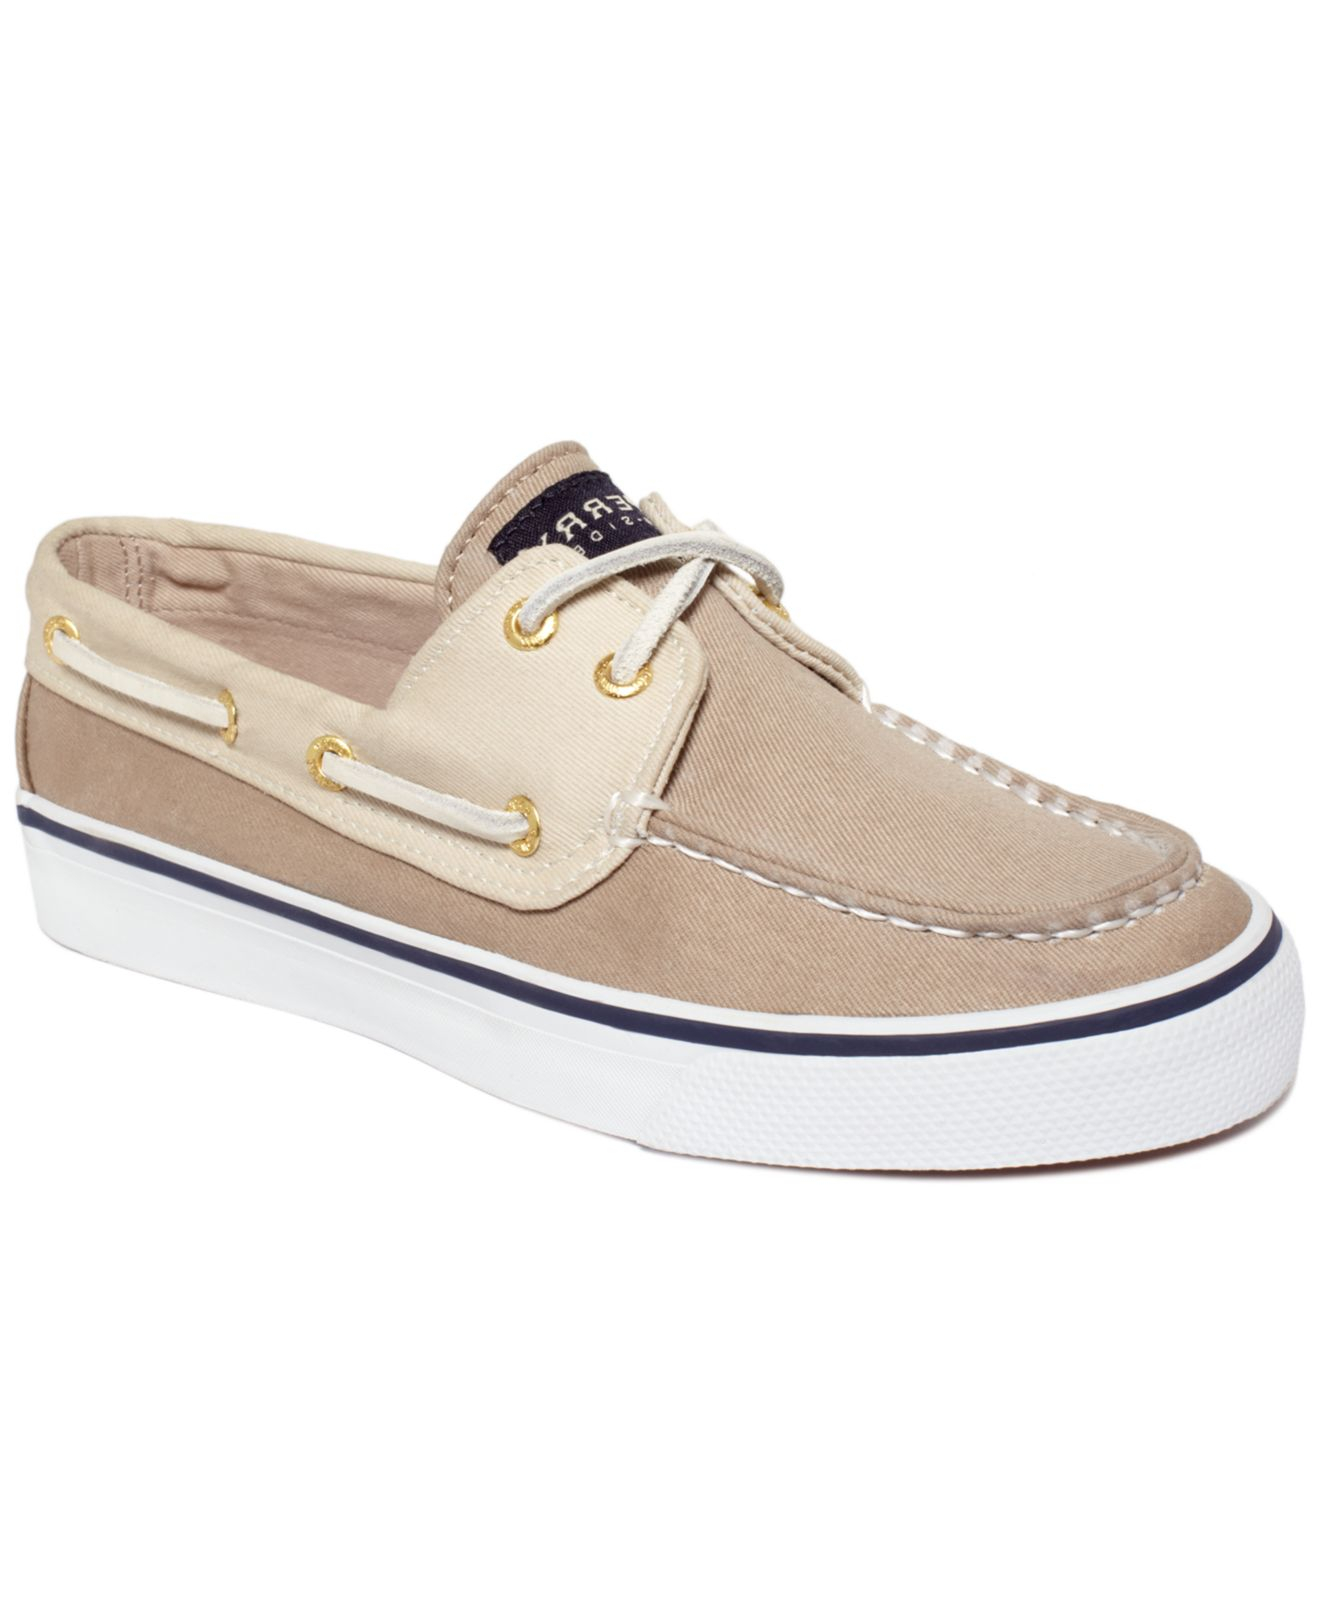 Sperry Ladies Boat Shoes Uk